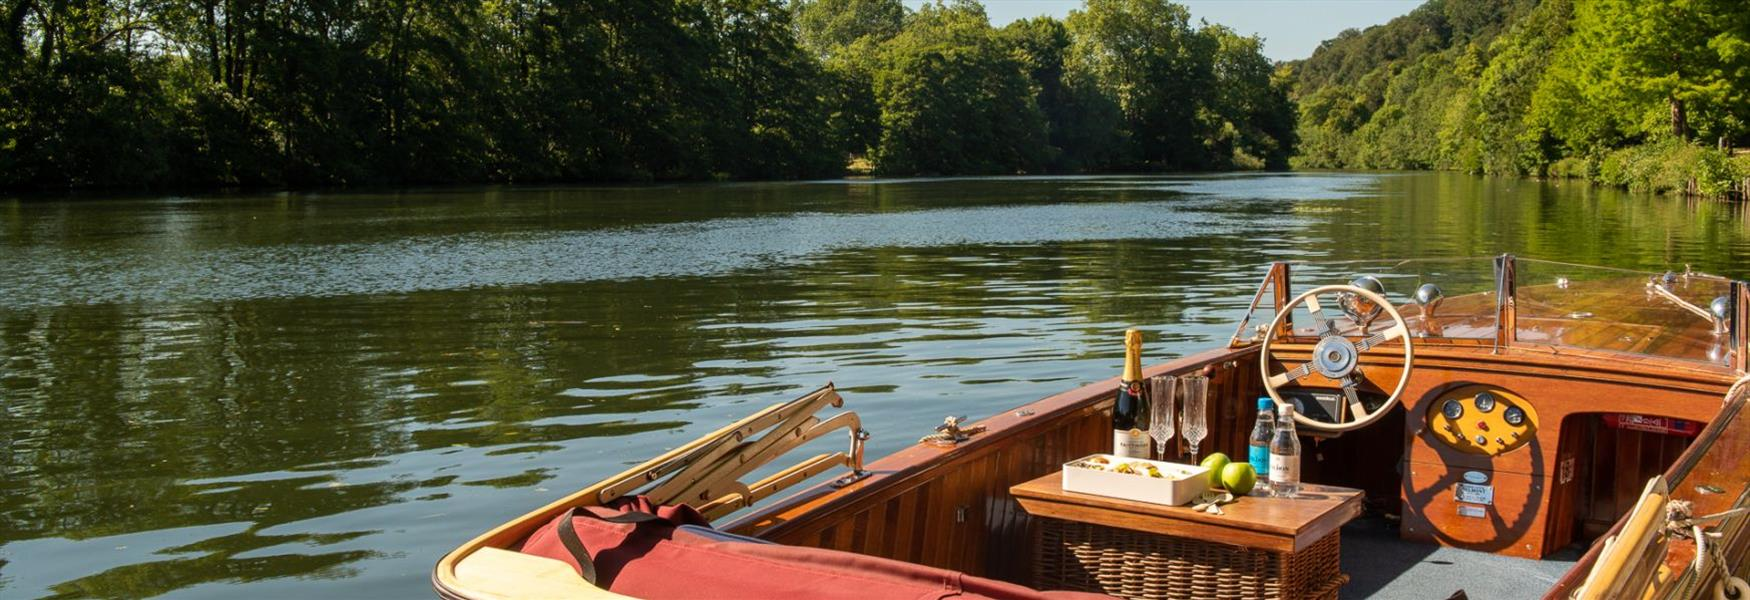 Boat picnic on the River Thames at Cliveden